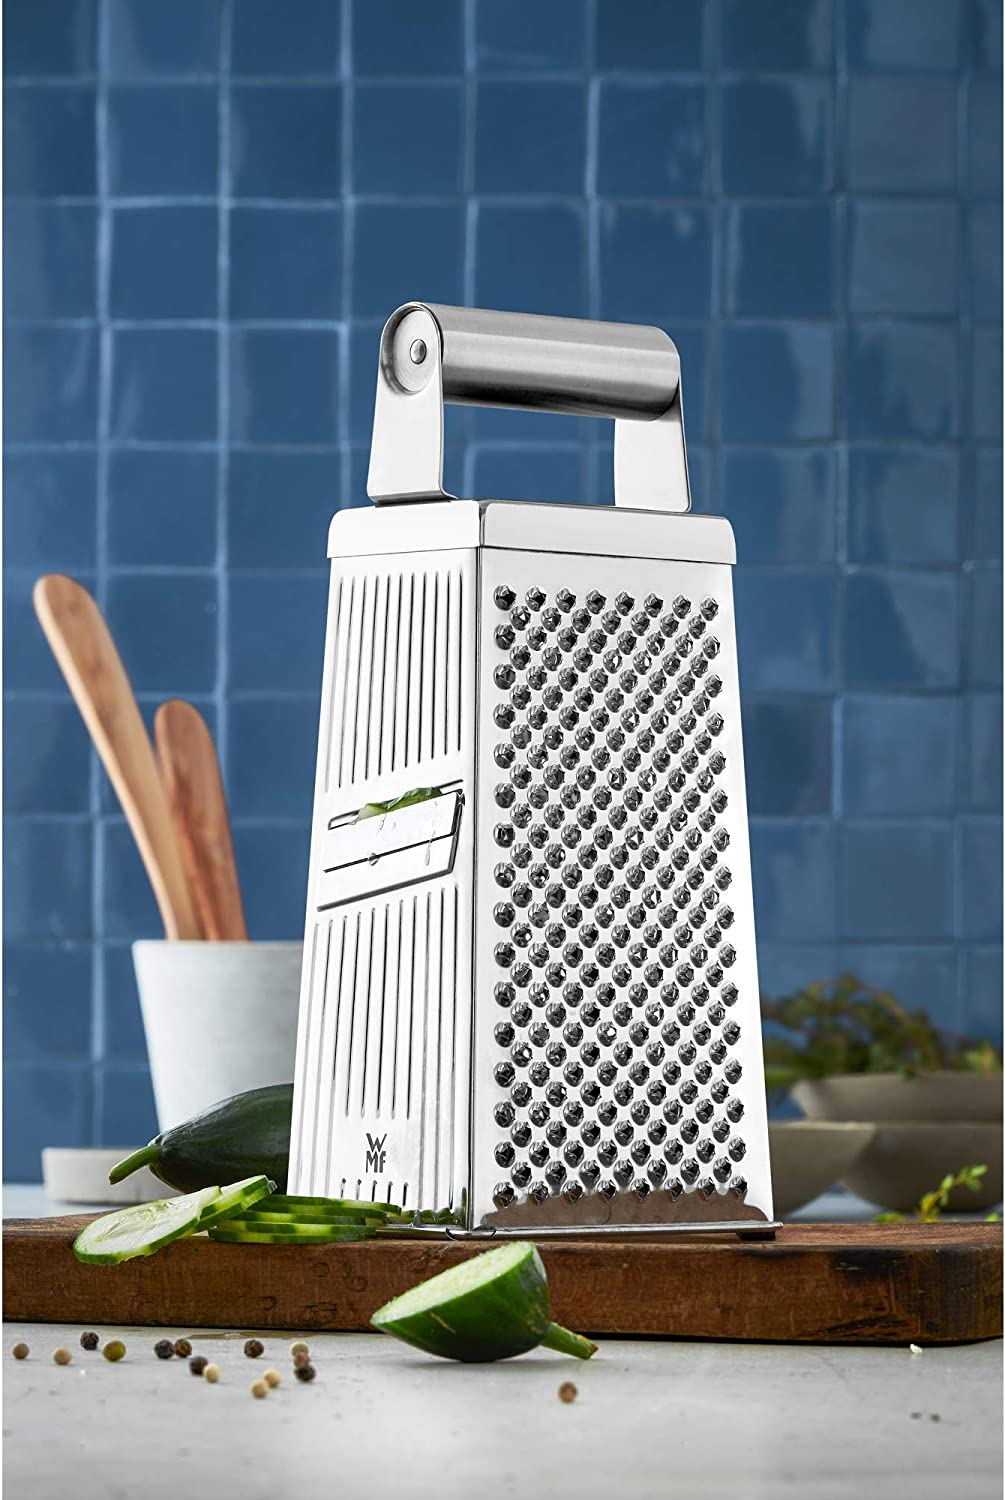 Buy WMF Four-Side Boxed Grater 0644416030 Online in Vietnam. B00008XX8F